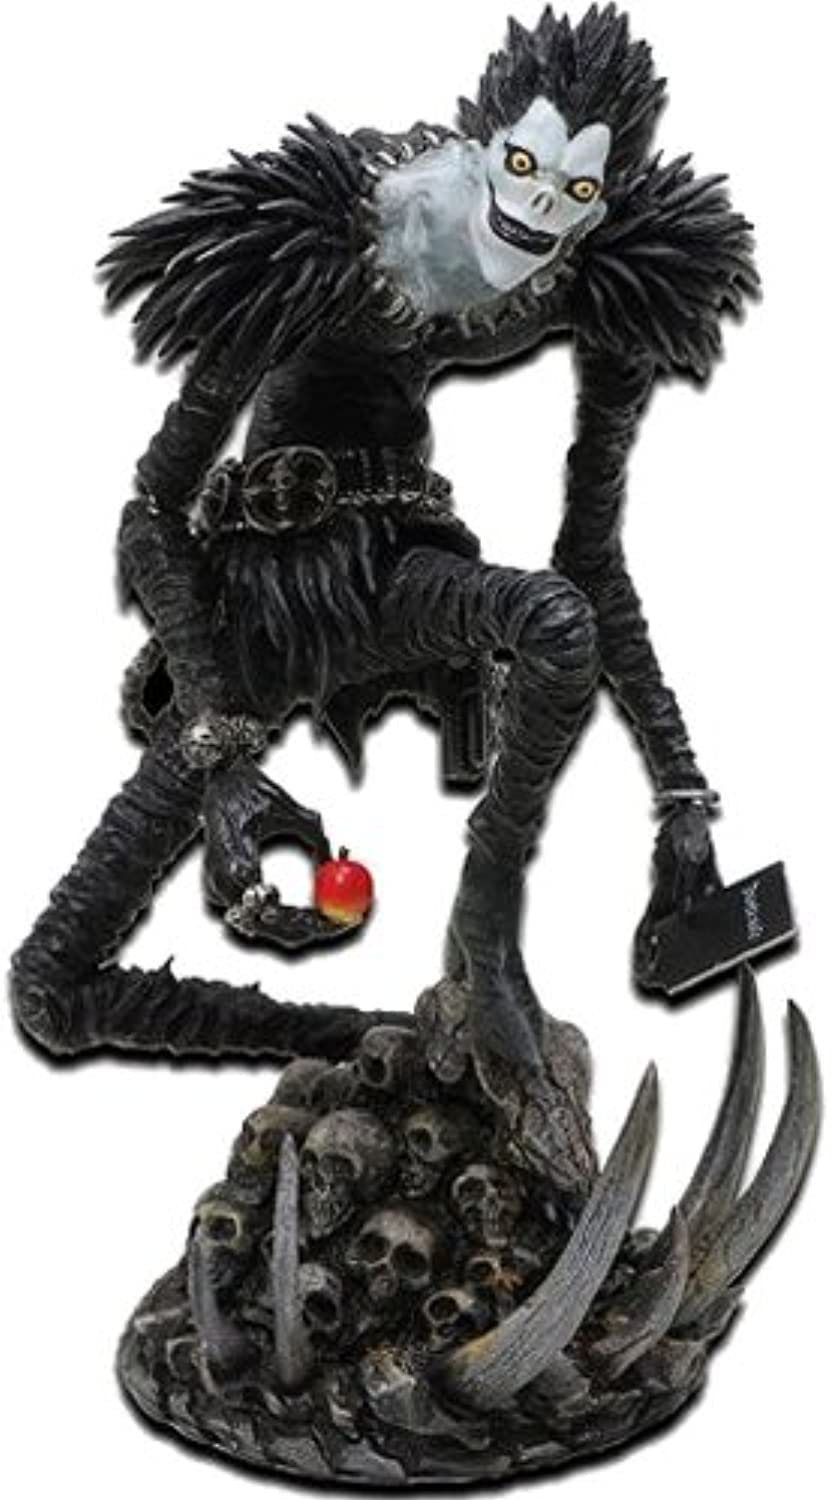 Death Note Season I Ryuk 17cm Action Action Action Fig. [German Version] 1c79ca